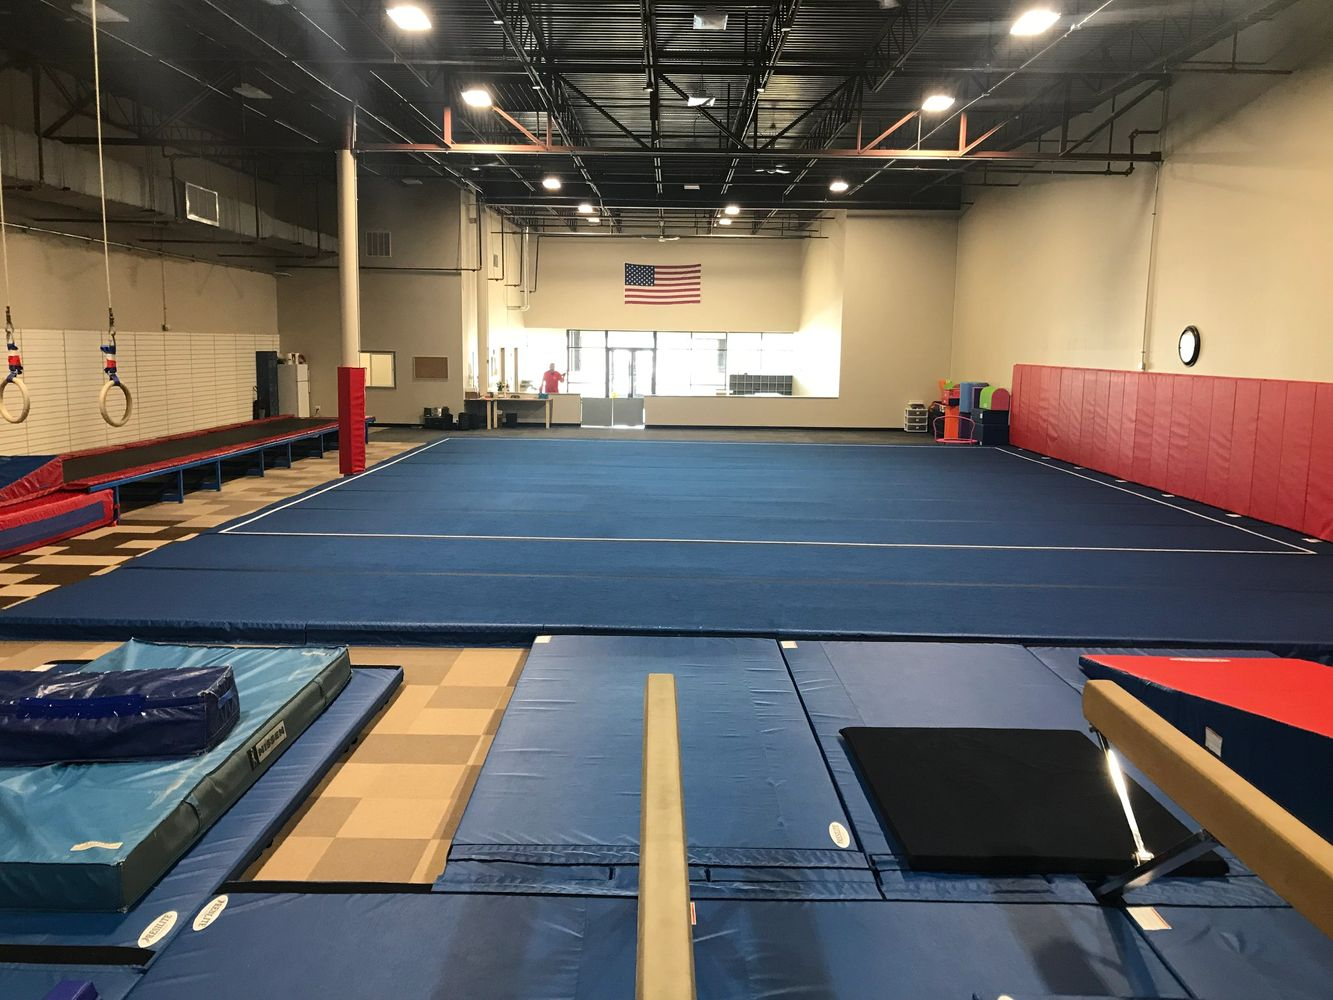 WELCOME TO SOUTHERN NEW HAMPSHIRE GYMNASTICS ACADEMY!